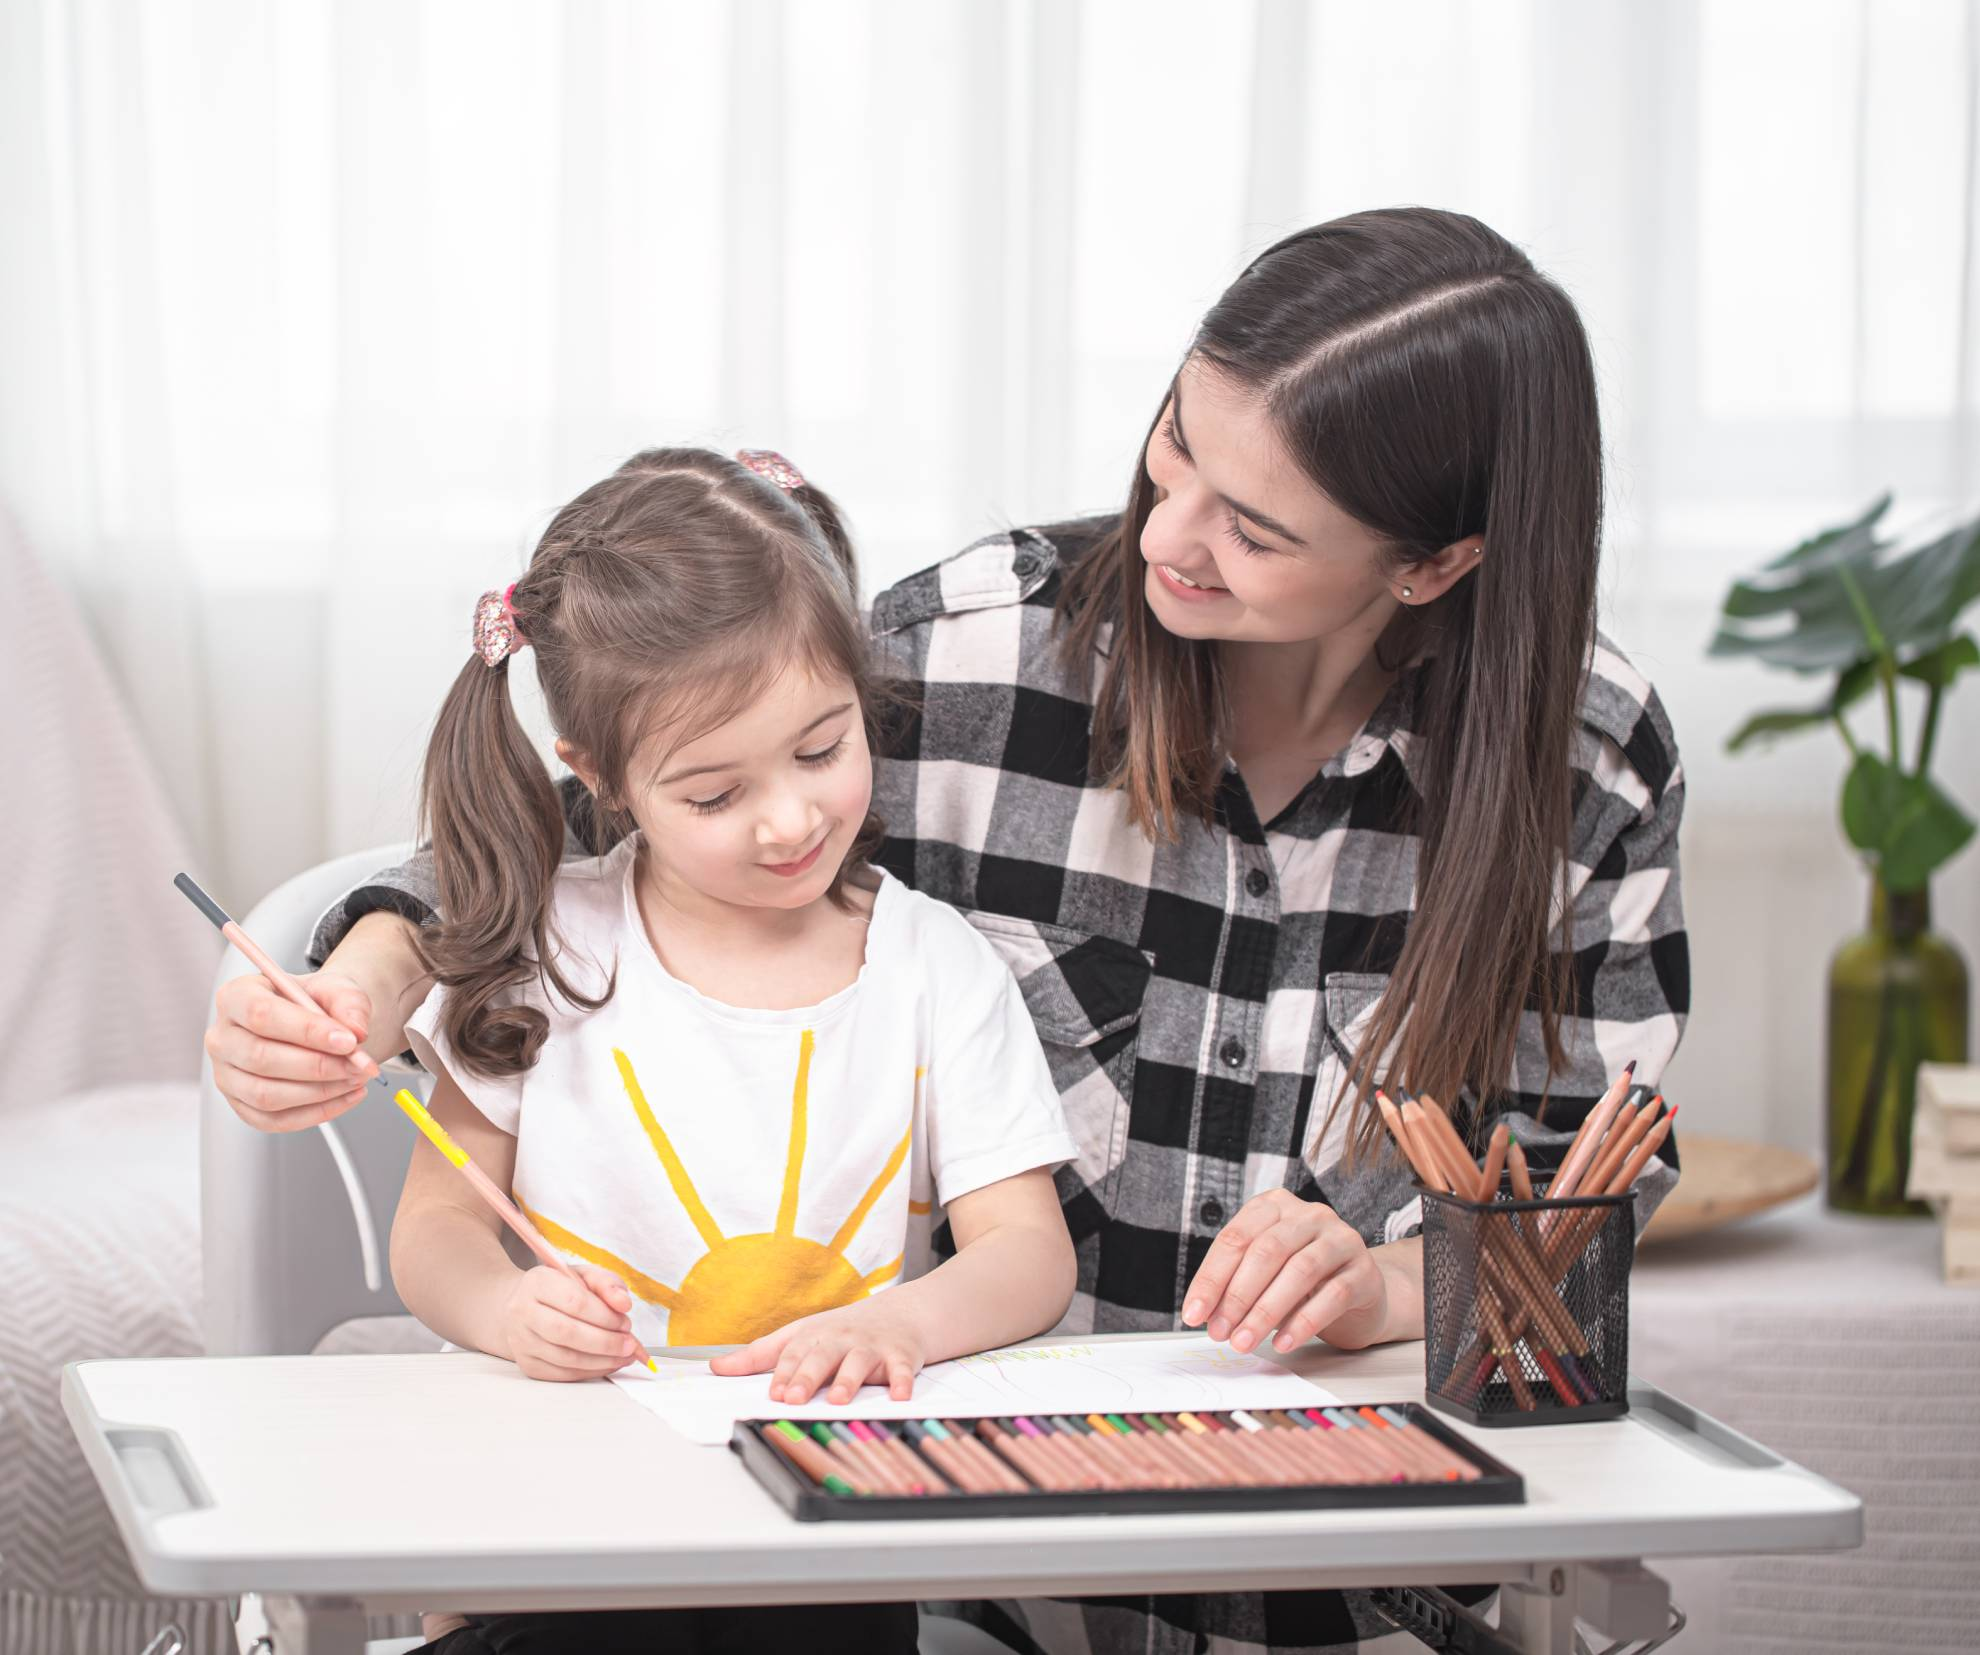 a-mother-with-a-child-sits-at-the-table-and-does-h-LNY3Z56 (1)